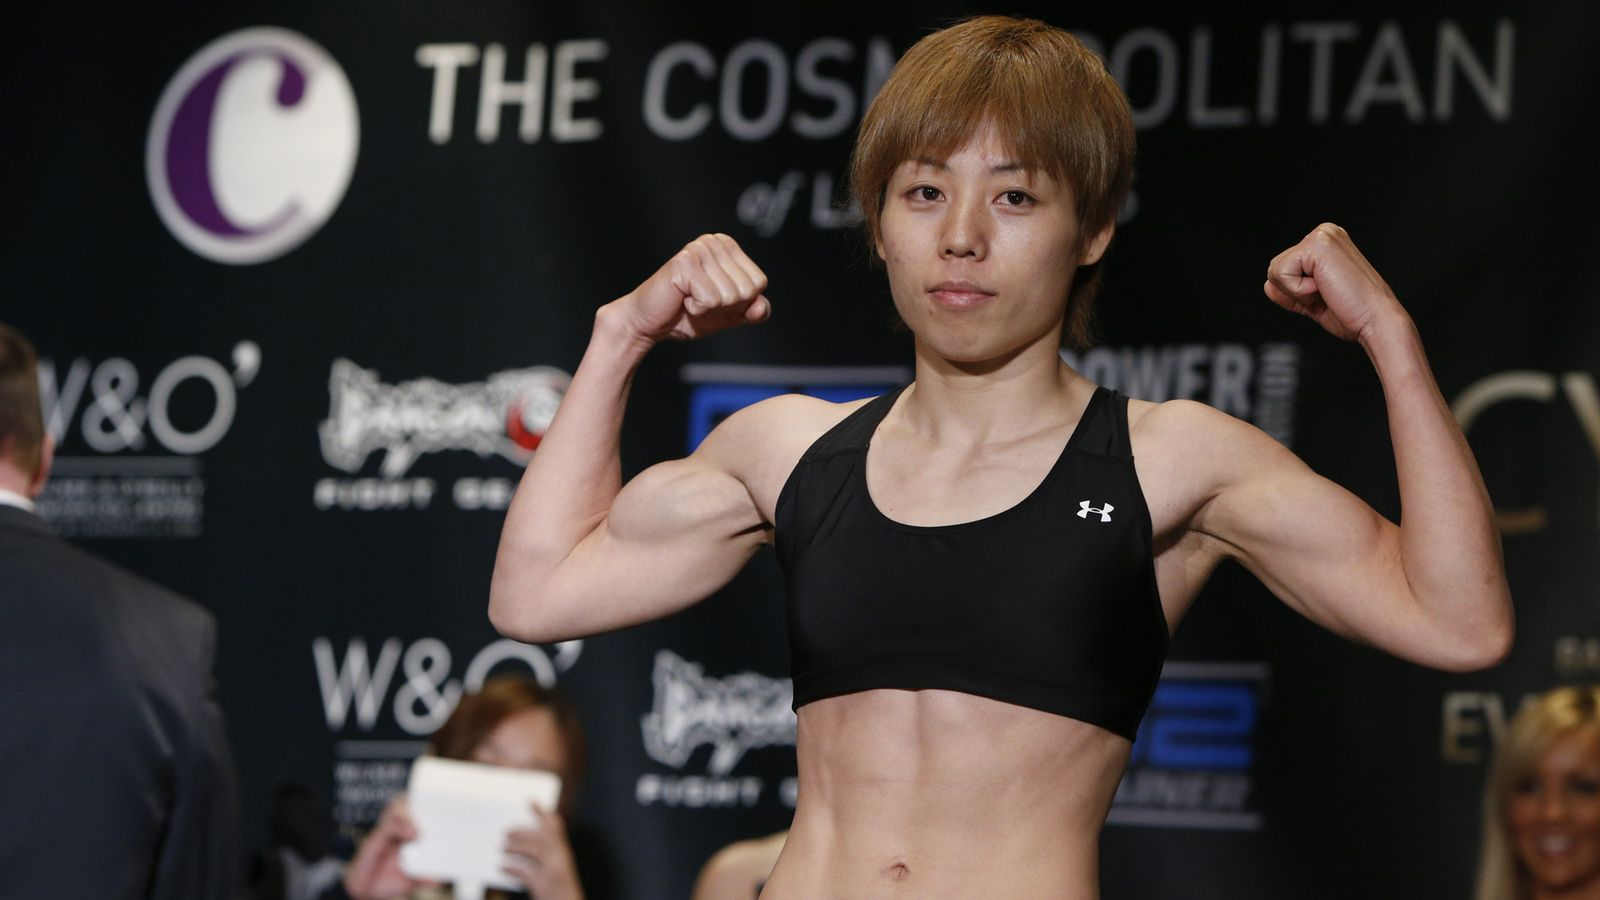 Invicta atomweight champ Ayaka Hamasaki moves up to strawweight to face Livia Renata Souza